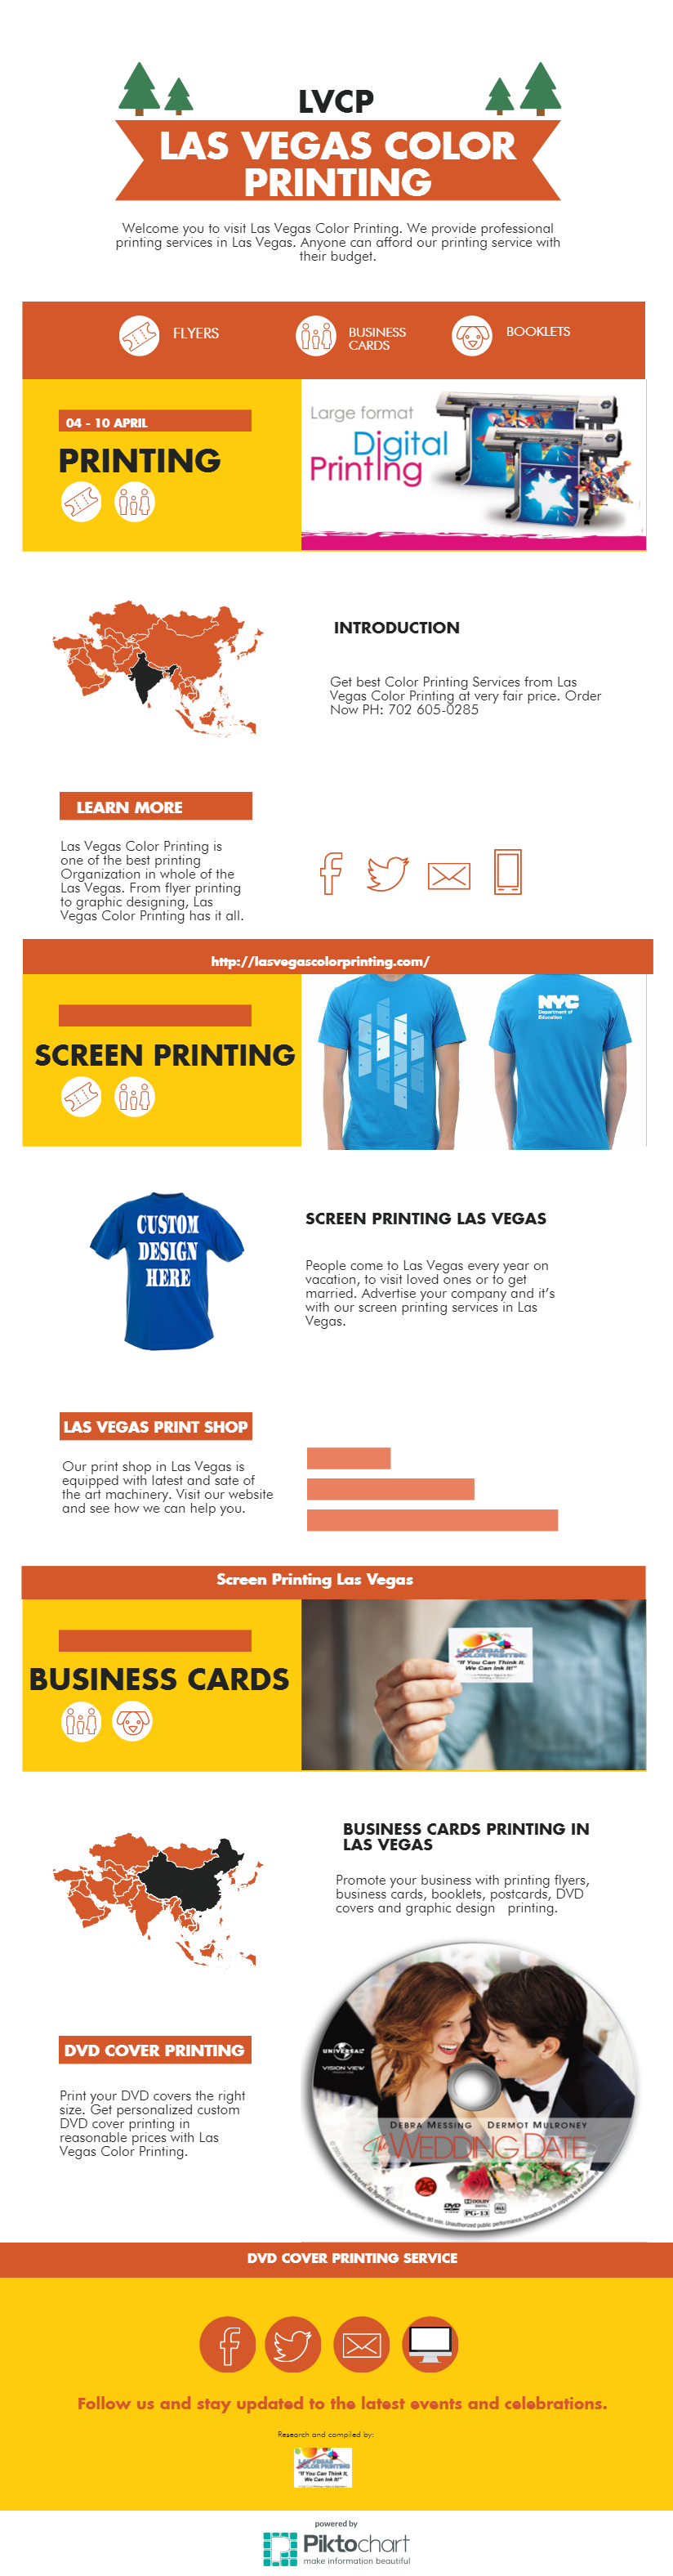 At Las Vegas Color Printing, we have latest technology to print ...